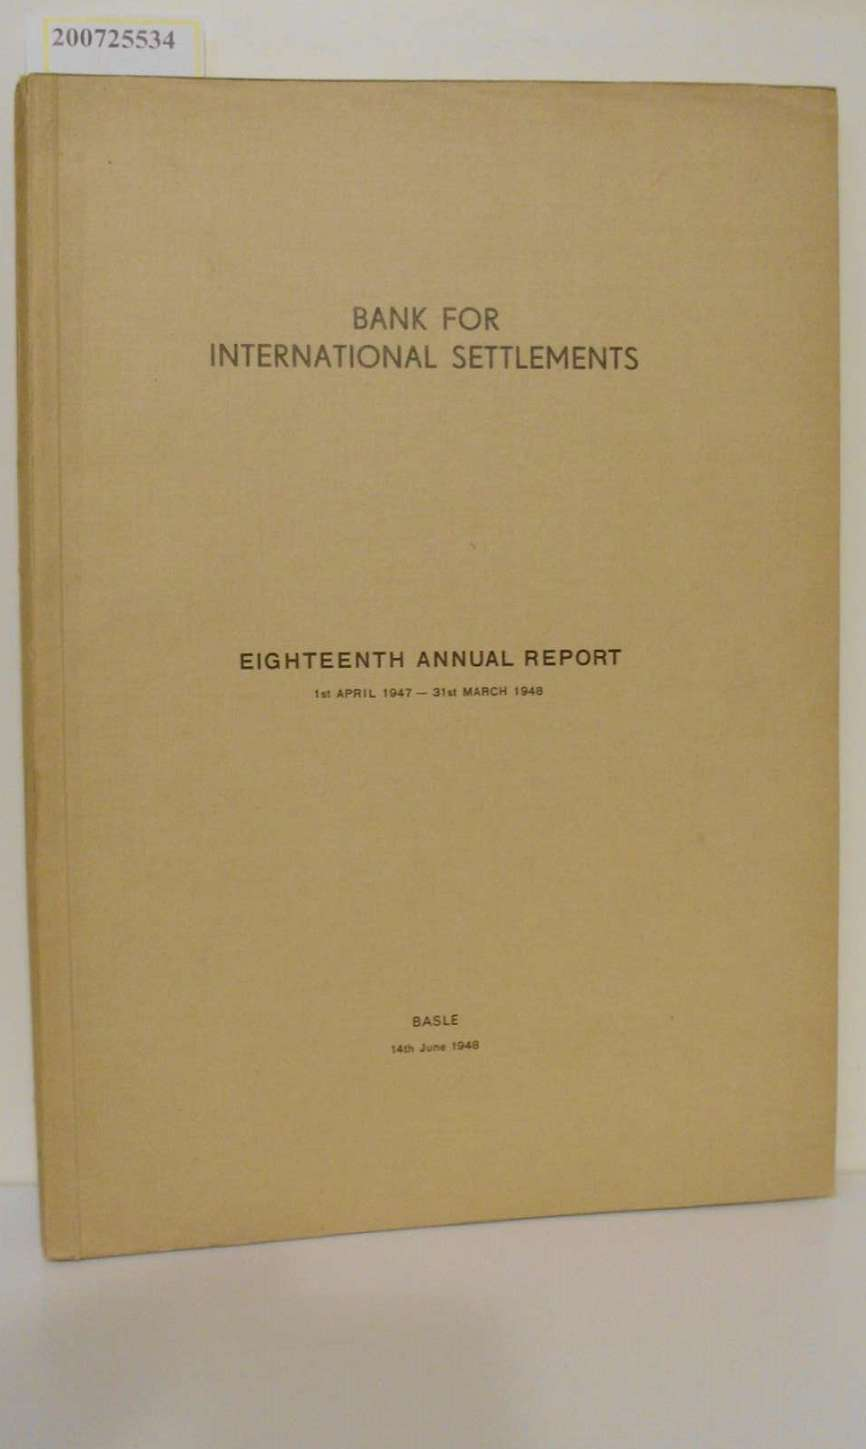 Bank for International Settlements: Eighteenth Annual Report 1st April 1947 - 31st March 1948